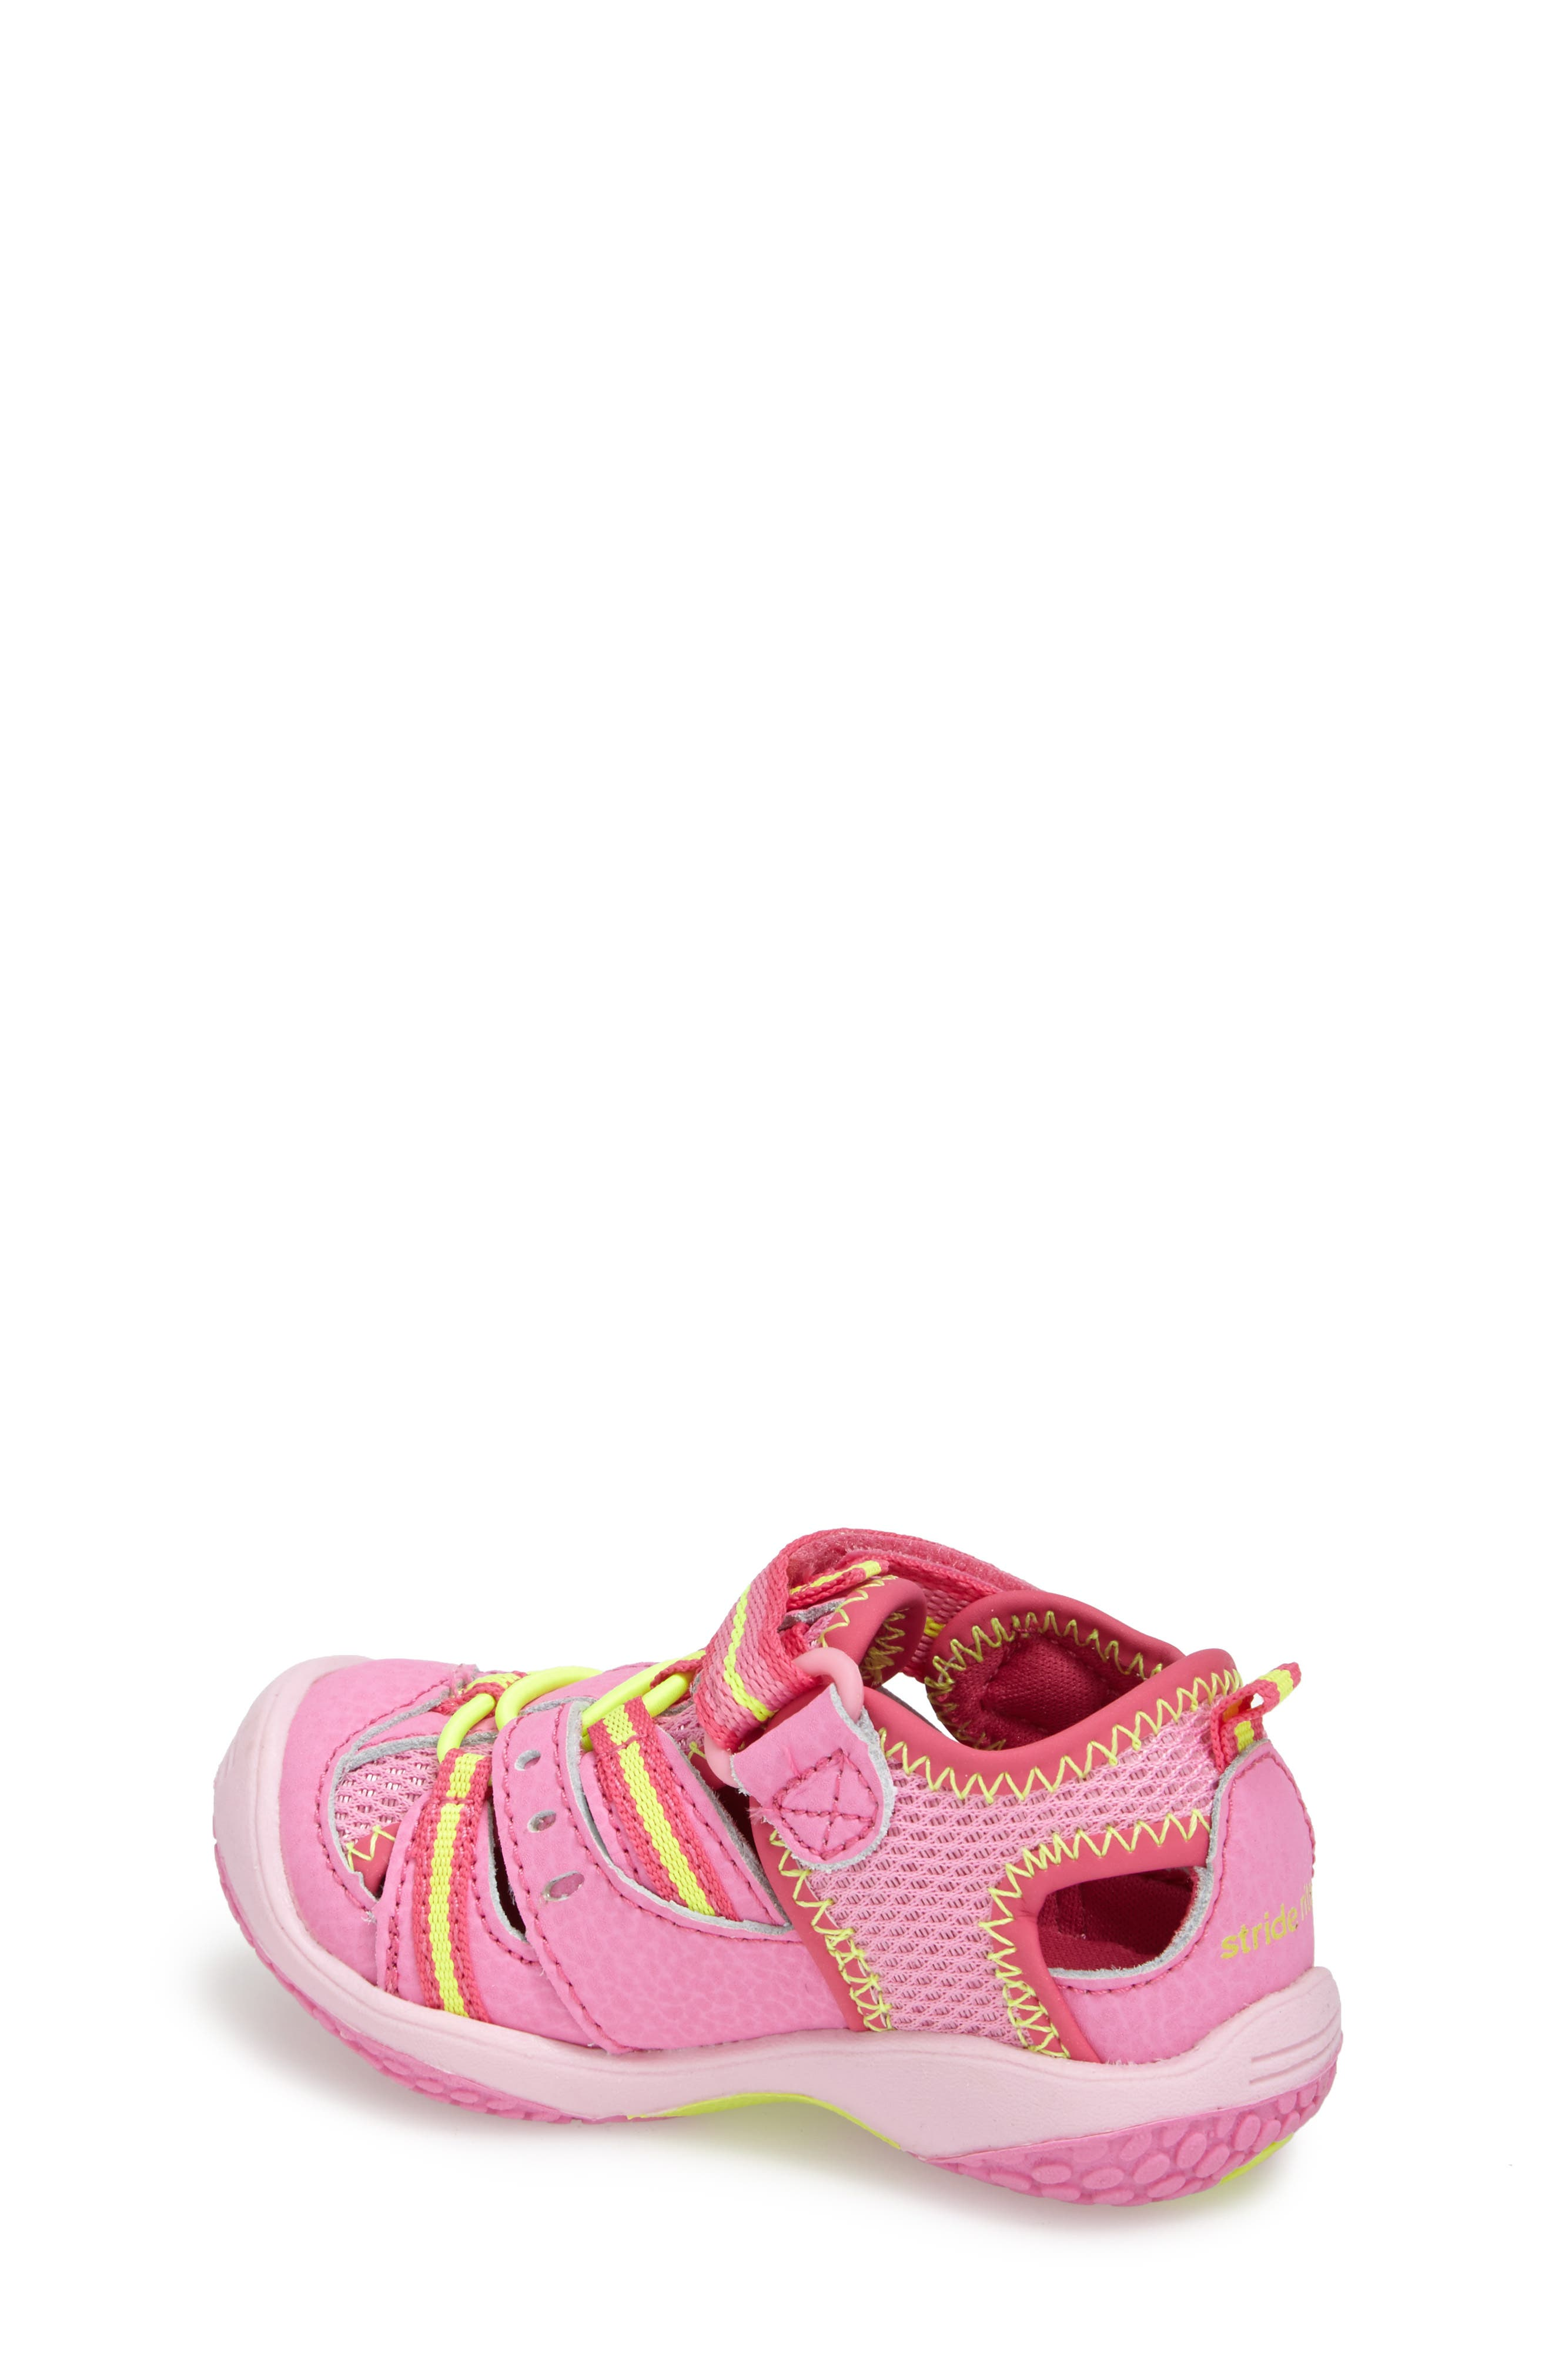 'Baby Petra' Sandal,                             Alternate thumbnail 4, color,                             650